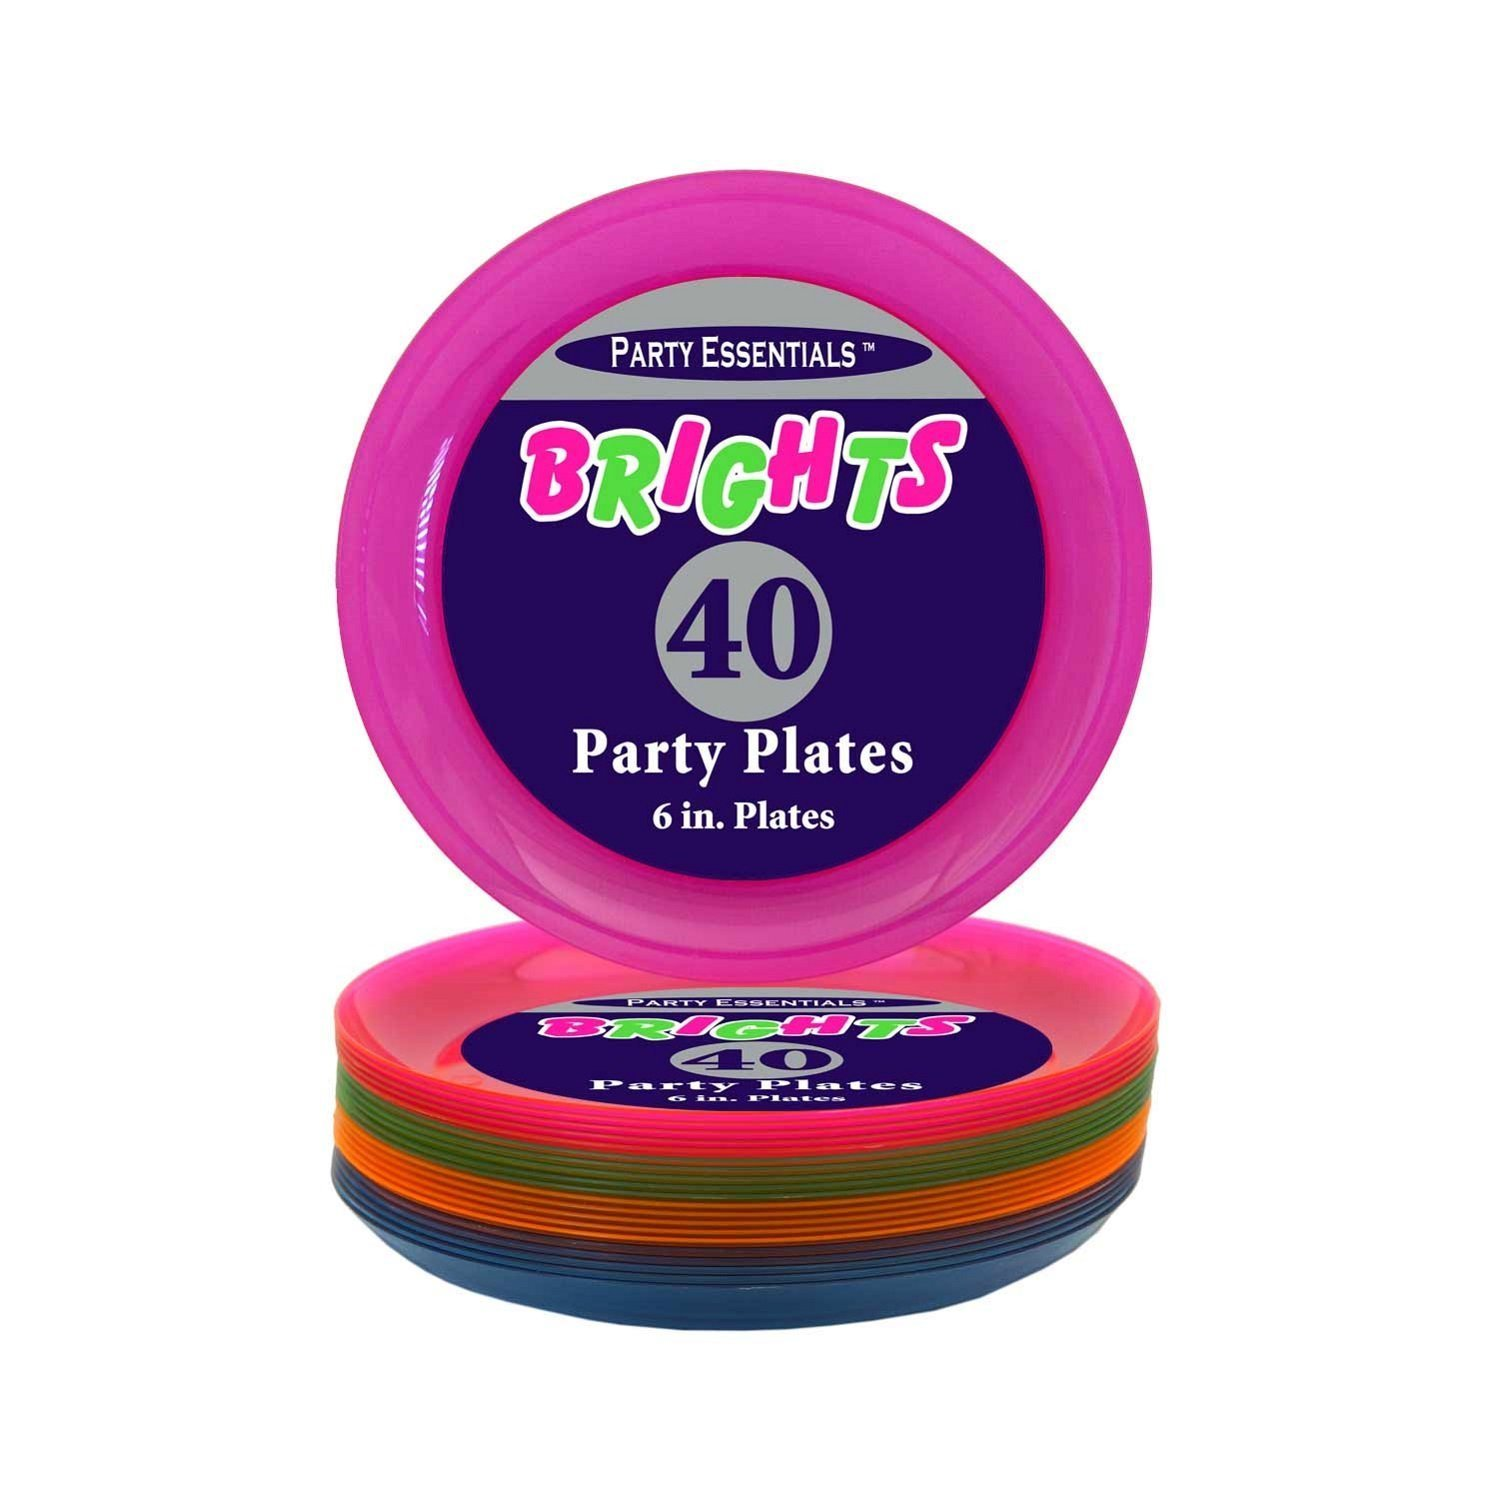 Amazon.com Party Essentials Hard Plastic 6-Inch Round Party/Dessert Plates Assorted Neon 40-Count Childrens Party Plates Toys u0026 Games  sc 1 st  Amazon.com & Amazon.com: Party Essentials Hard Plastic 6-Inch Round Party/Dessert ...